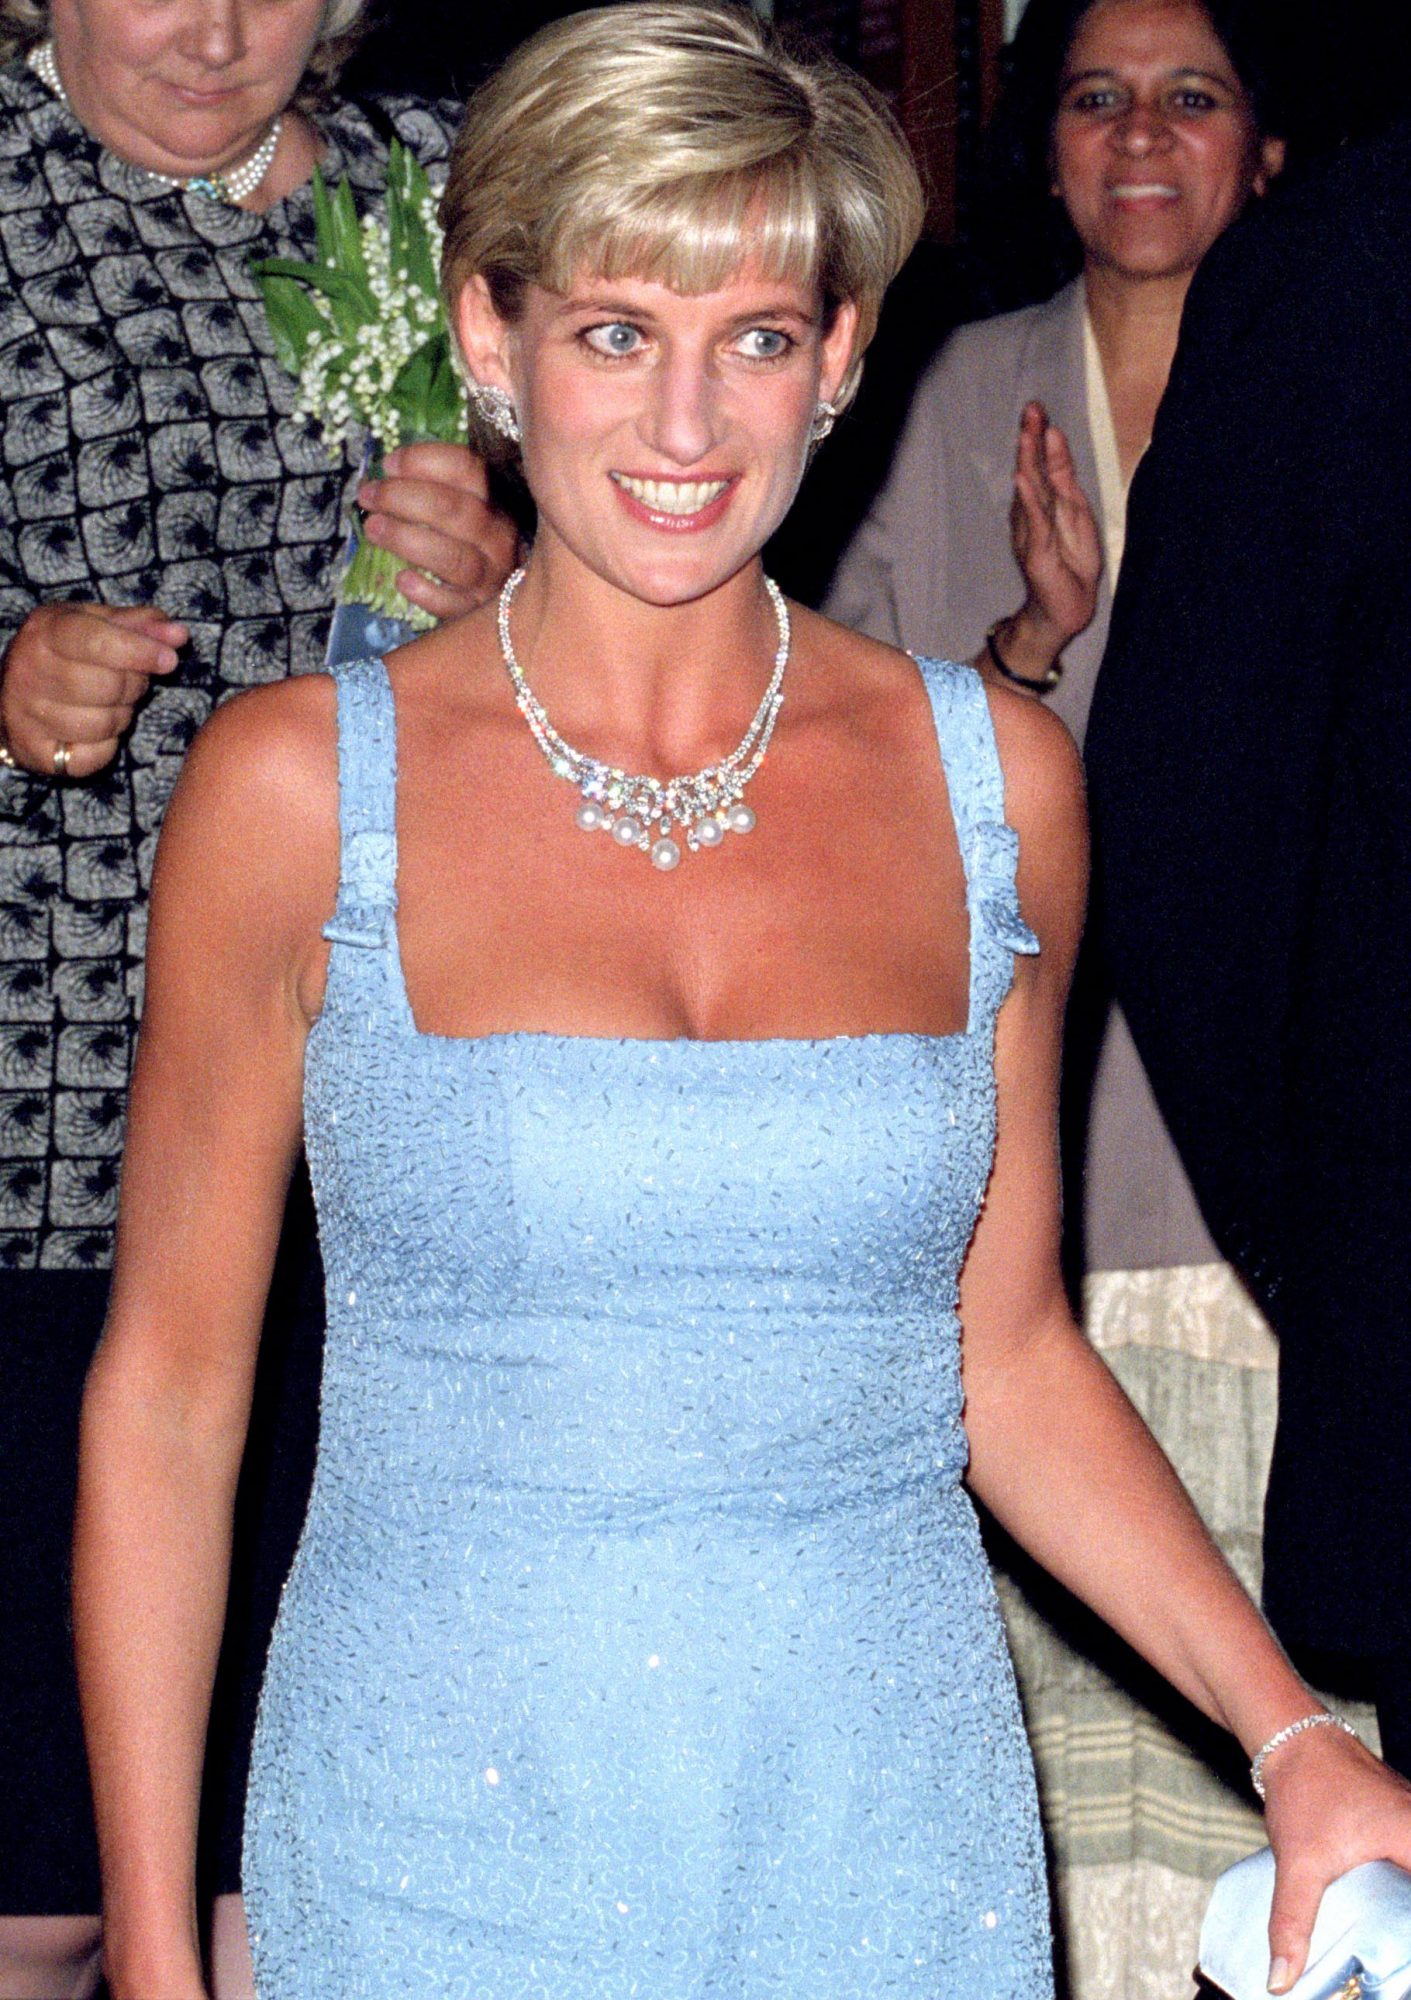 The Princess Of Wales Attends A Gala Performance Of 'Swan Lake'